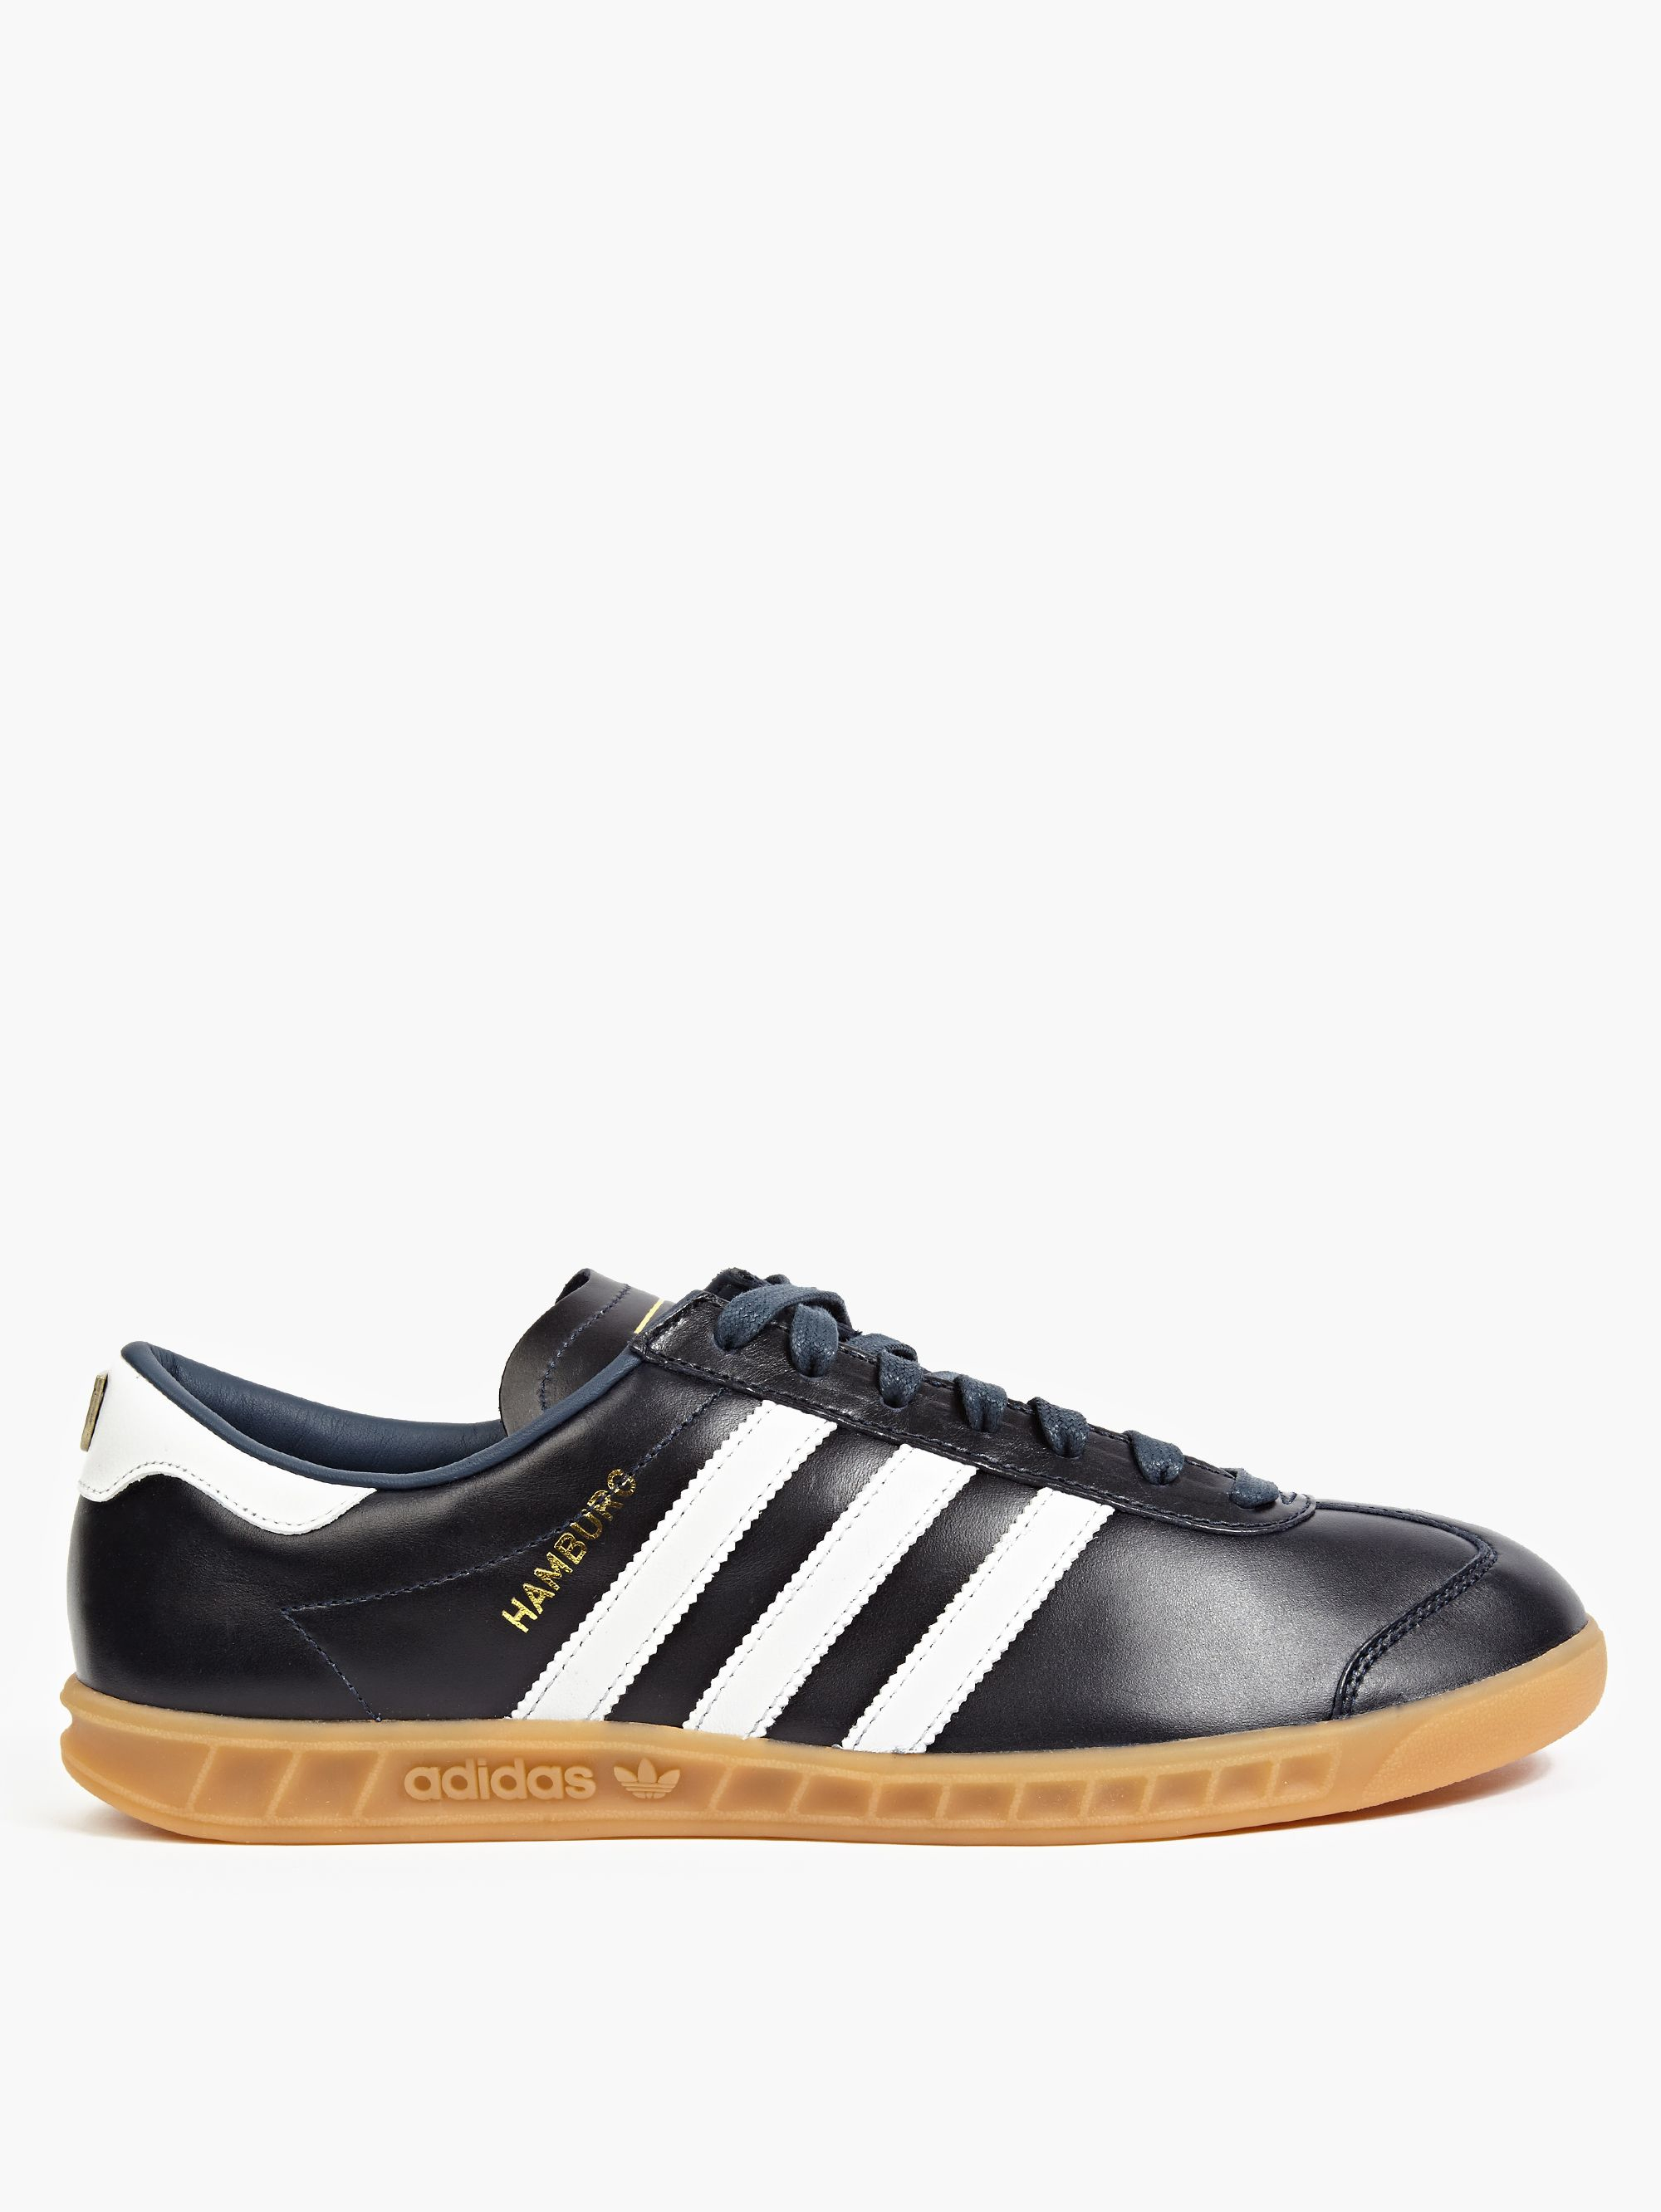 adidas originals navy hamburg 39 made in germany 39 sneakers in black for men lyst. Black Bedroom Furniture Sets. Home Design Ideas